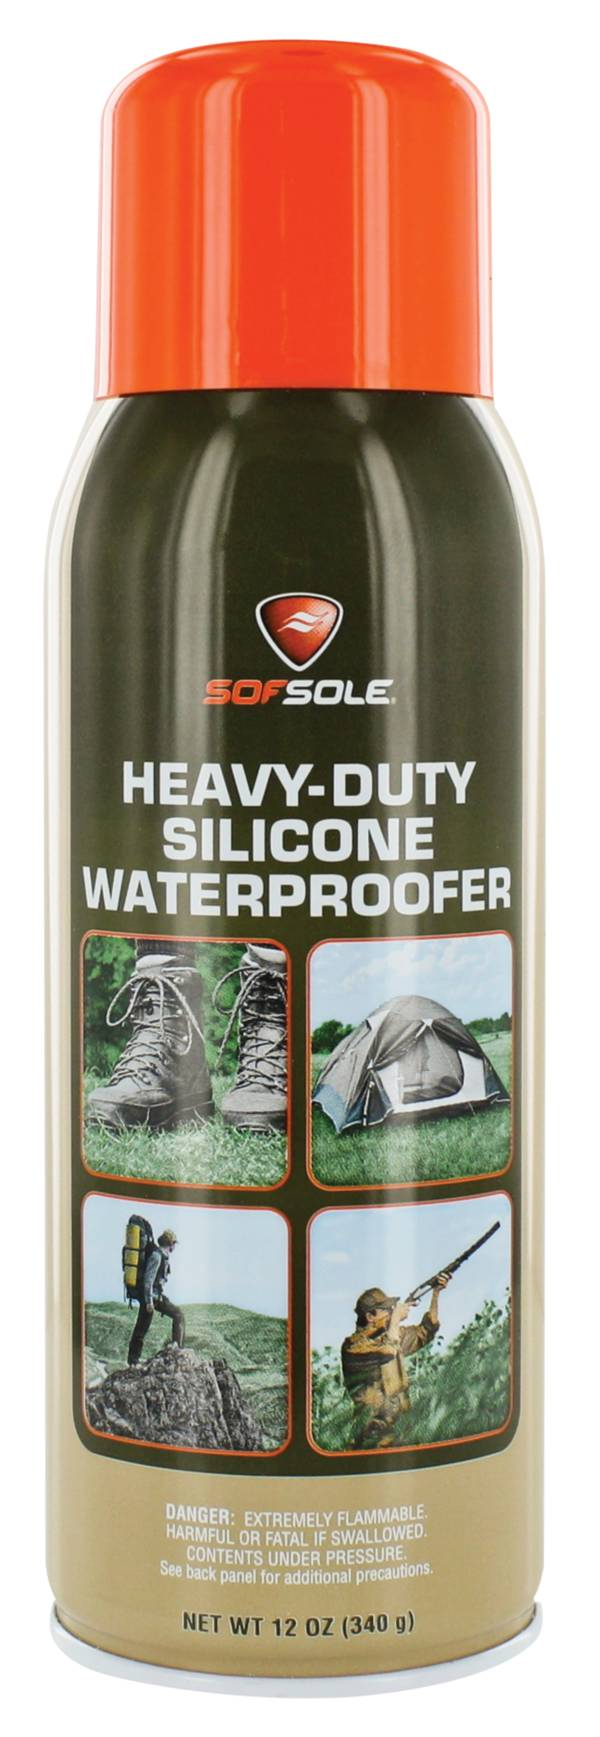 Sof Sole Heavy Duty Silicone Waterproofer product image